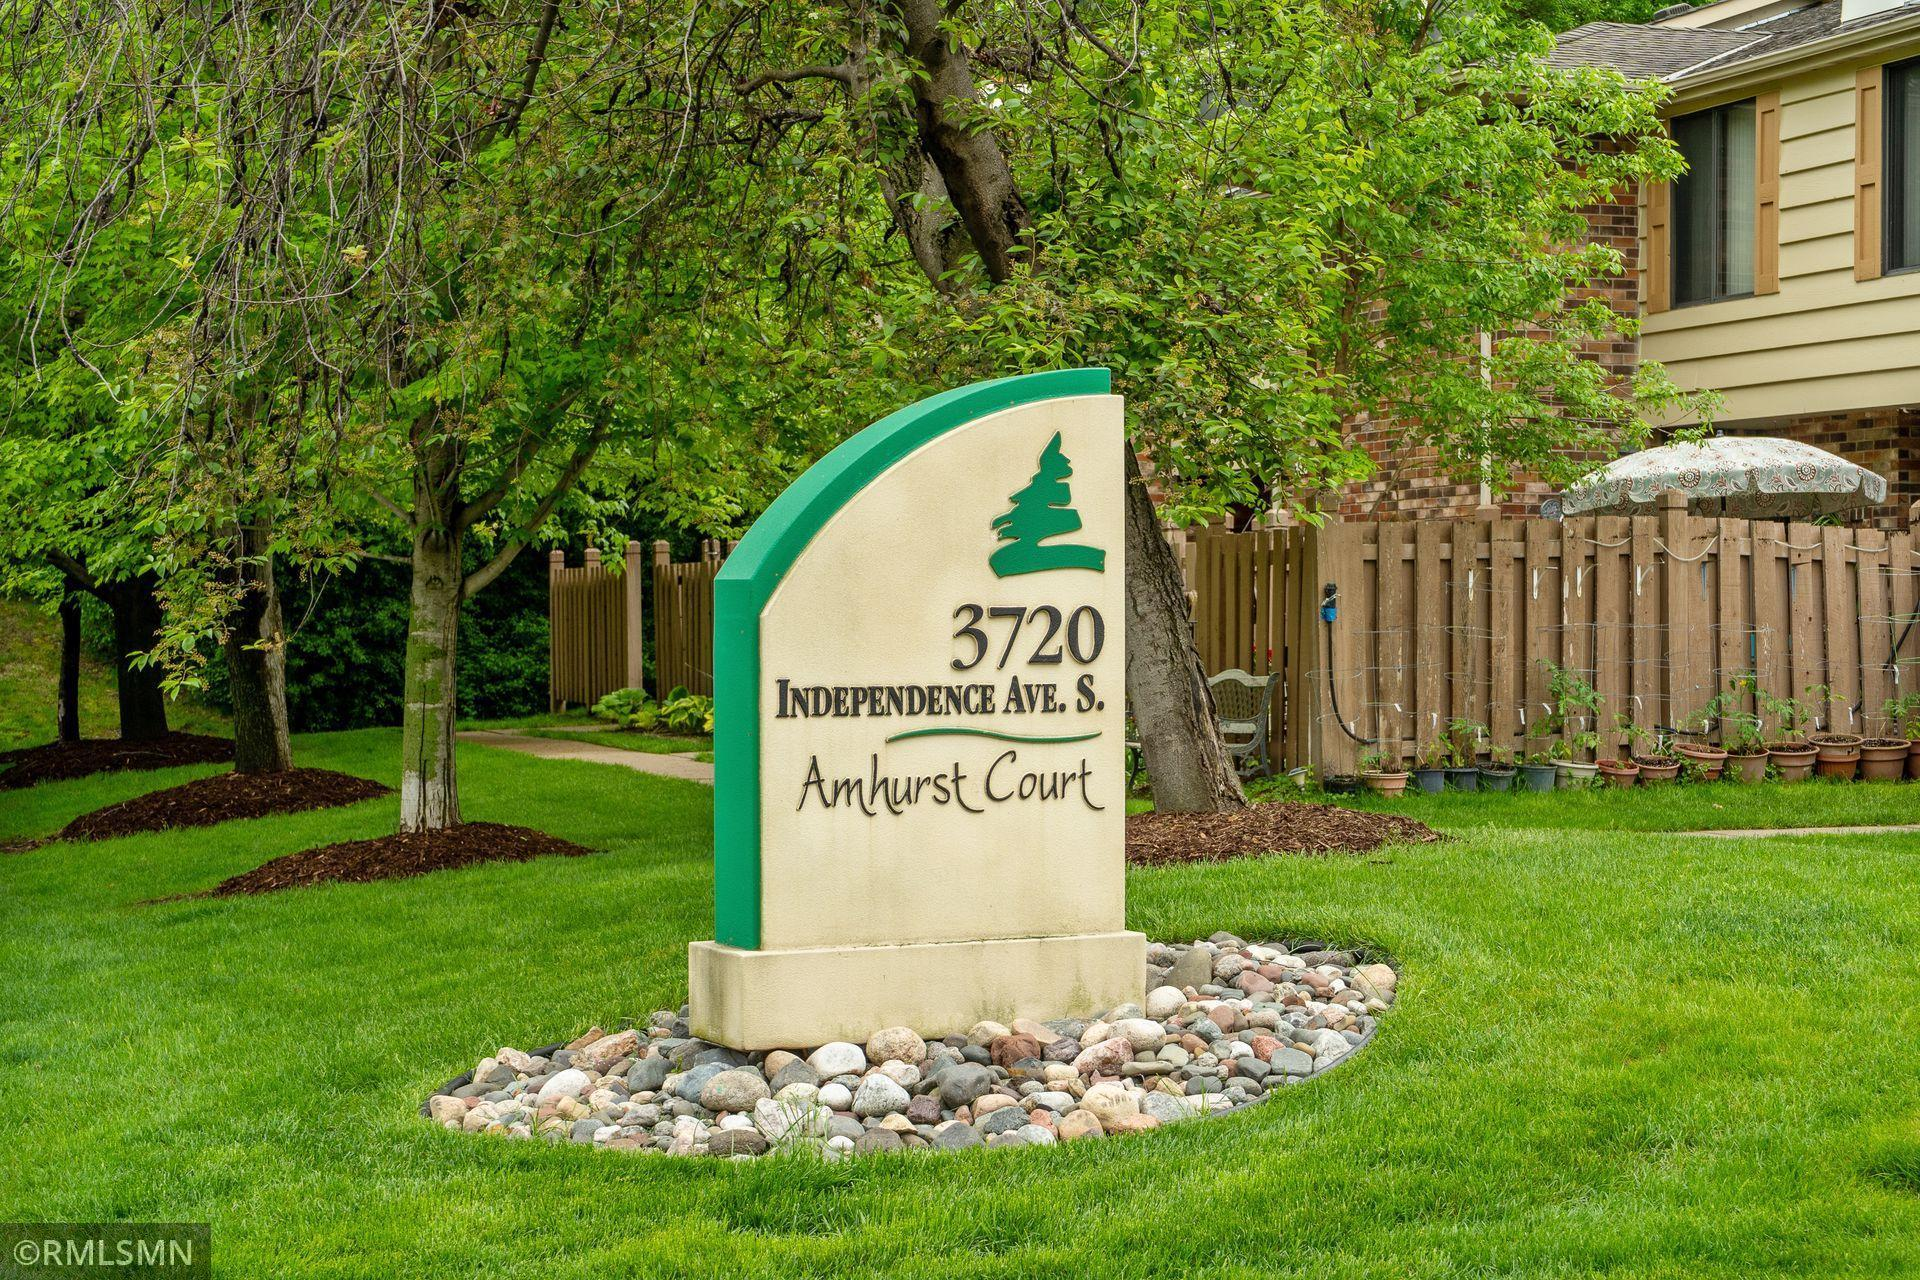 A St. Louis Park GEM!  This townhouse features an updated kitchen, 2nd floor laundry, and a wood-burning fireplace. Enjoy the privacy of your home in this quiet, yet centrally located community. You'll have access to a heated outdoor pool and tennis courts this summer. Pets and rentals allowed.